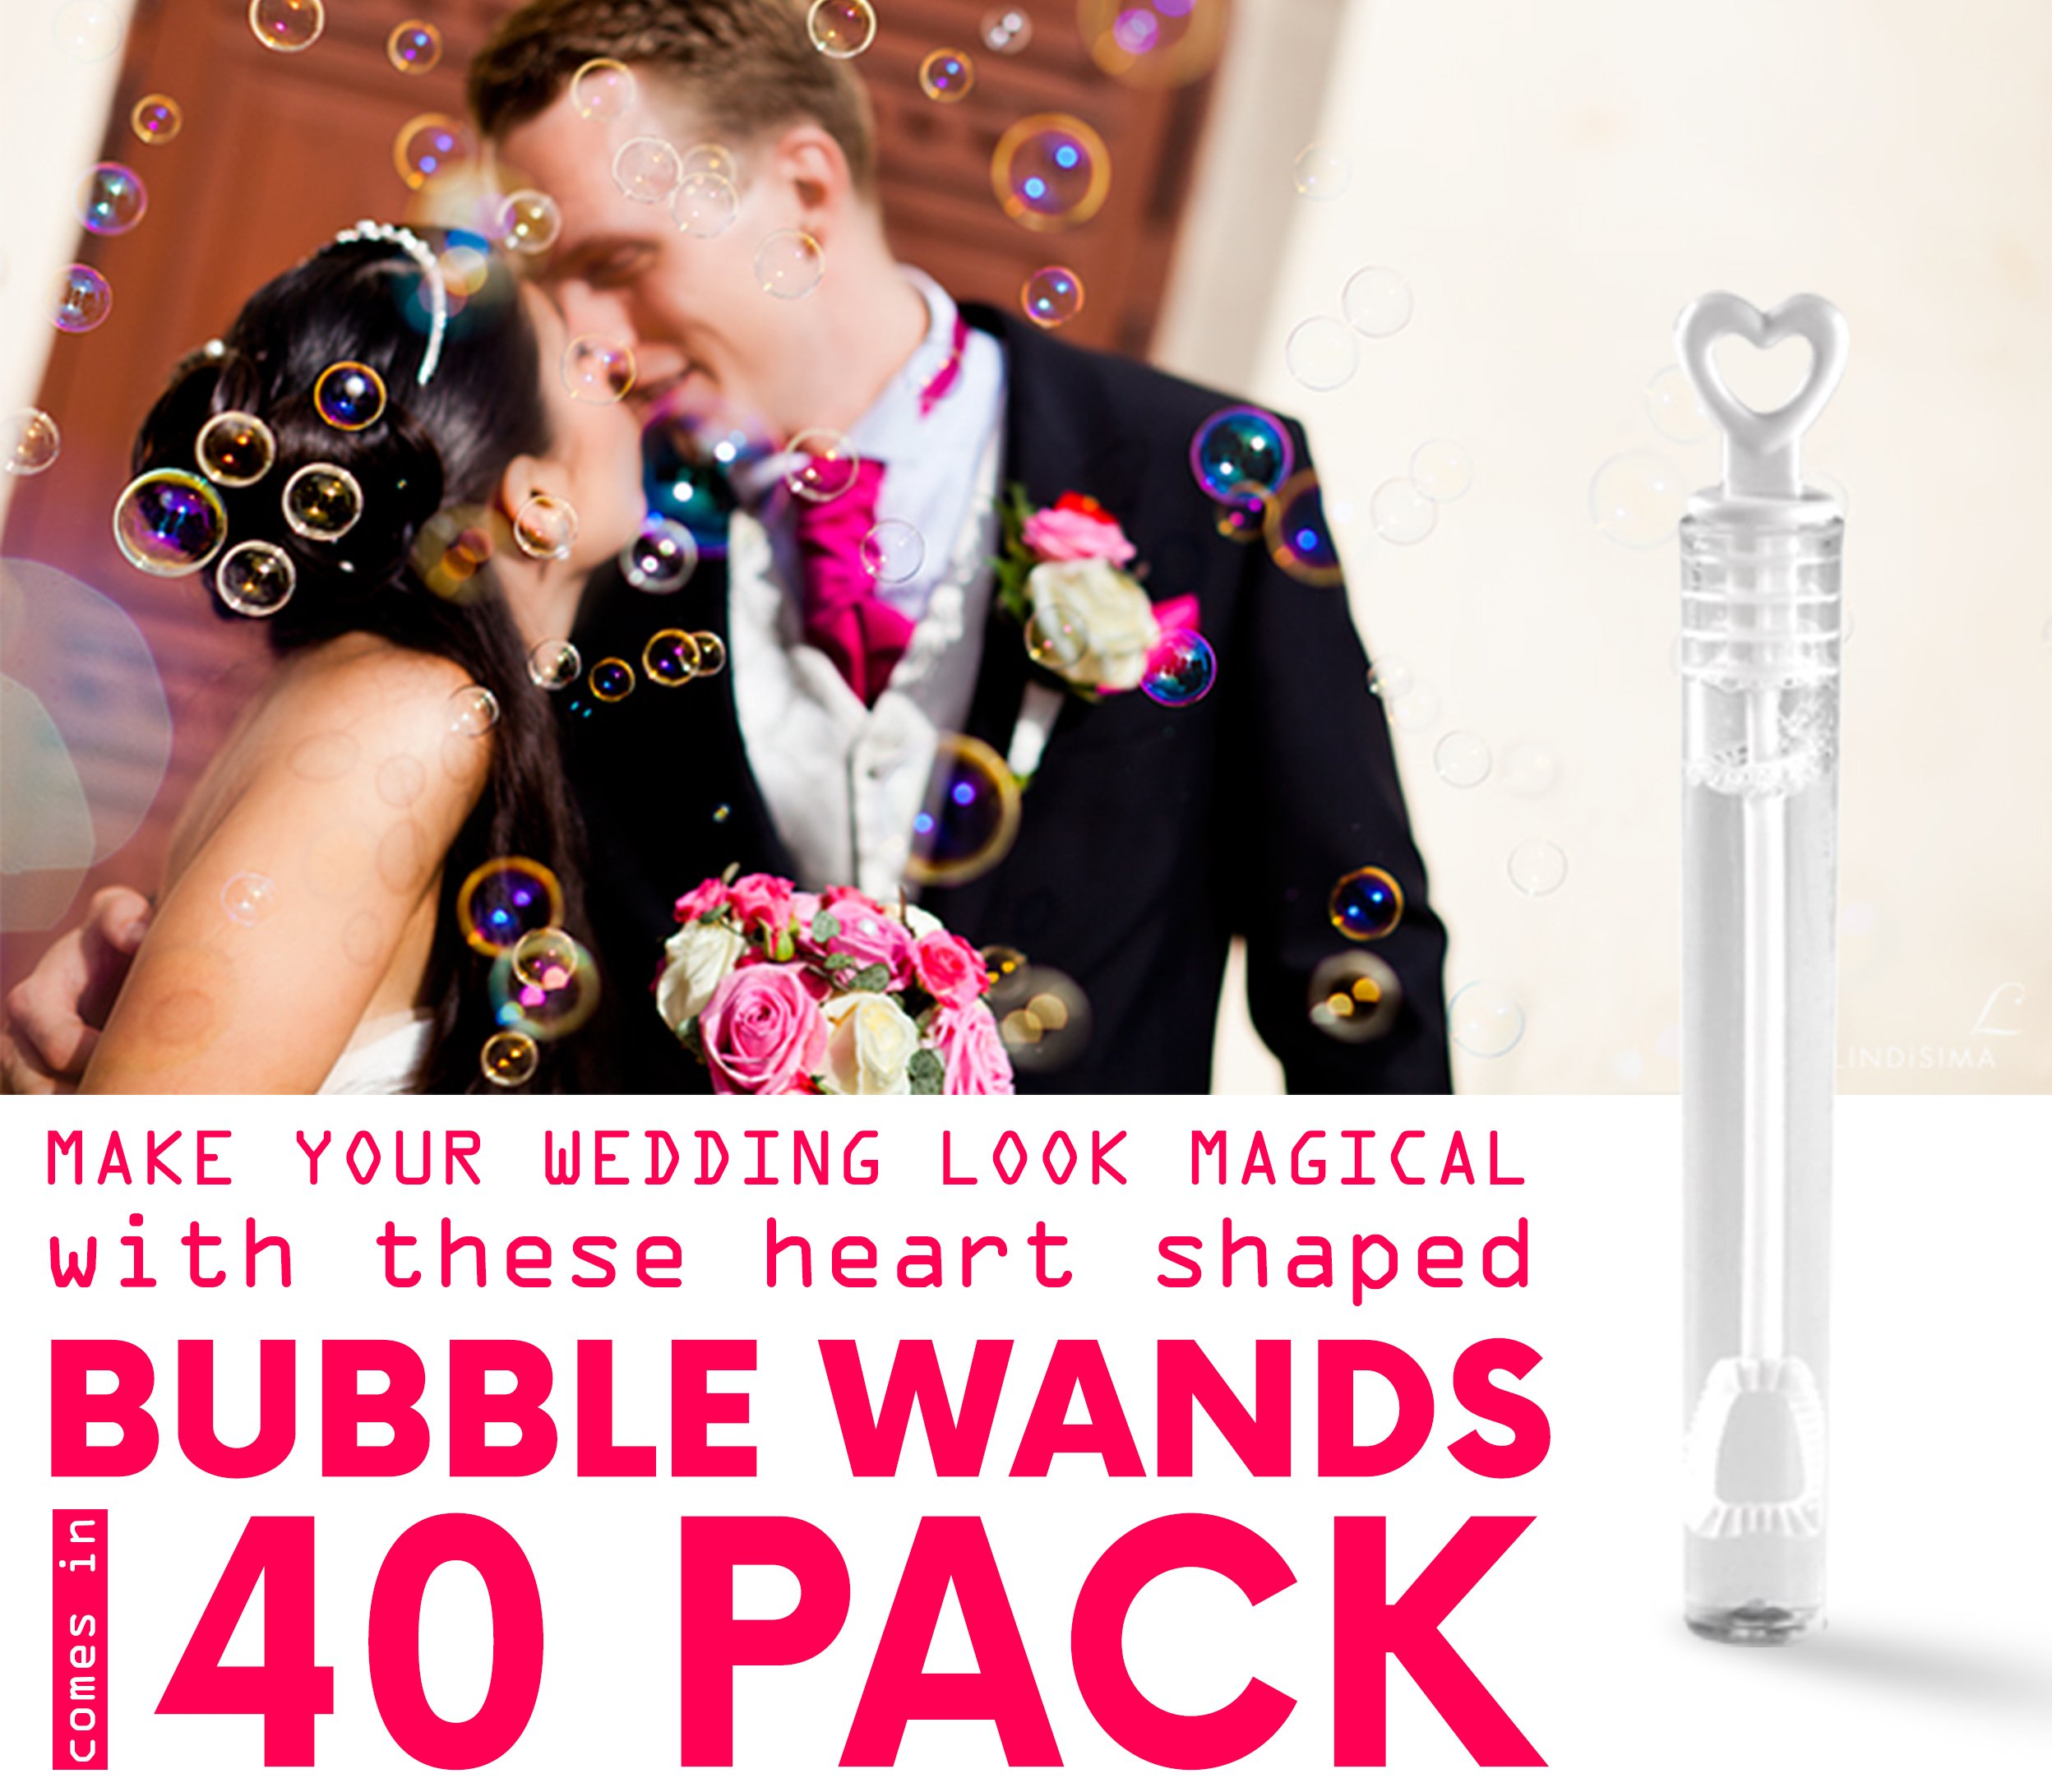 40 Pack Mini Heart Bubble Wands – Great Wand Bubbles Party Favors For Weddings and Anniversaries by Big Mo's Toys by Big Mo's Toys (Image #6)